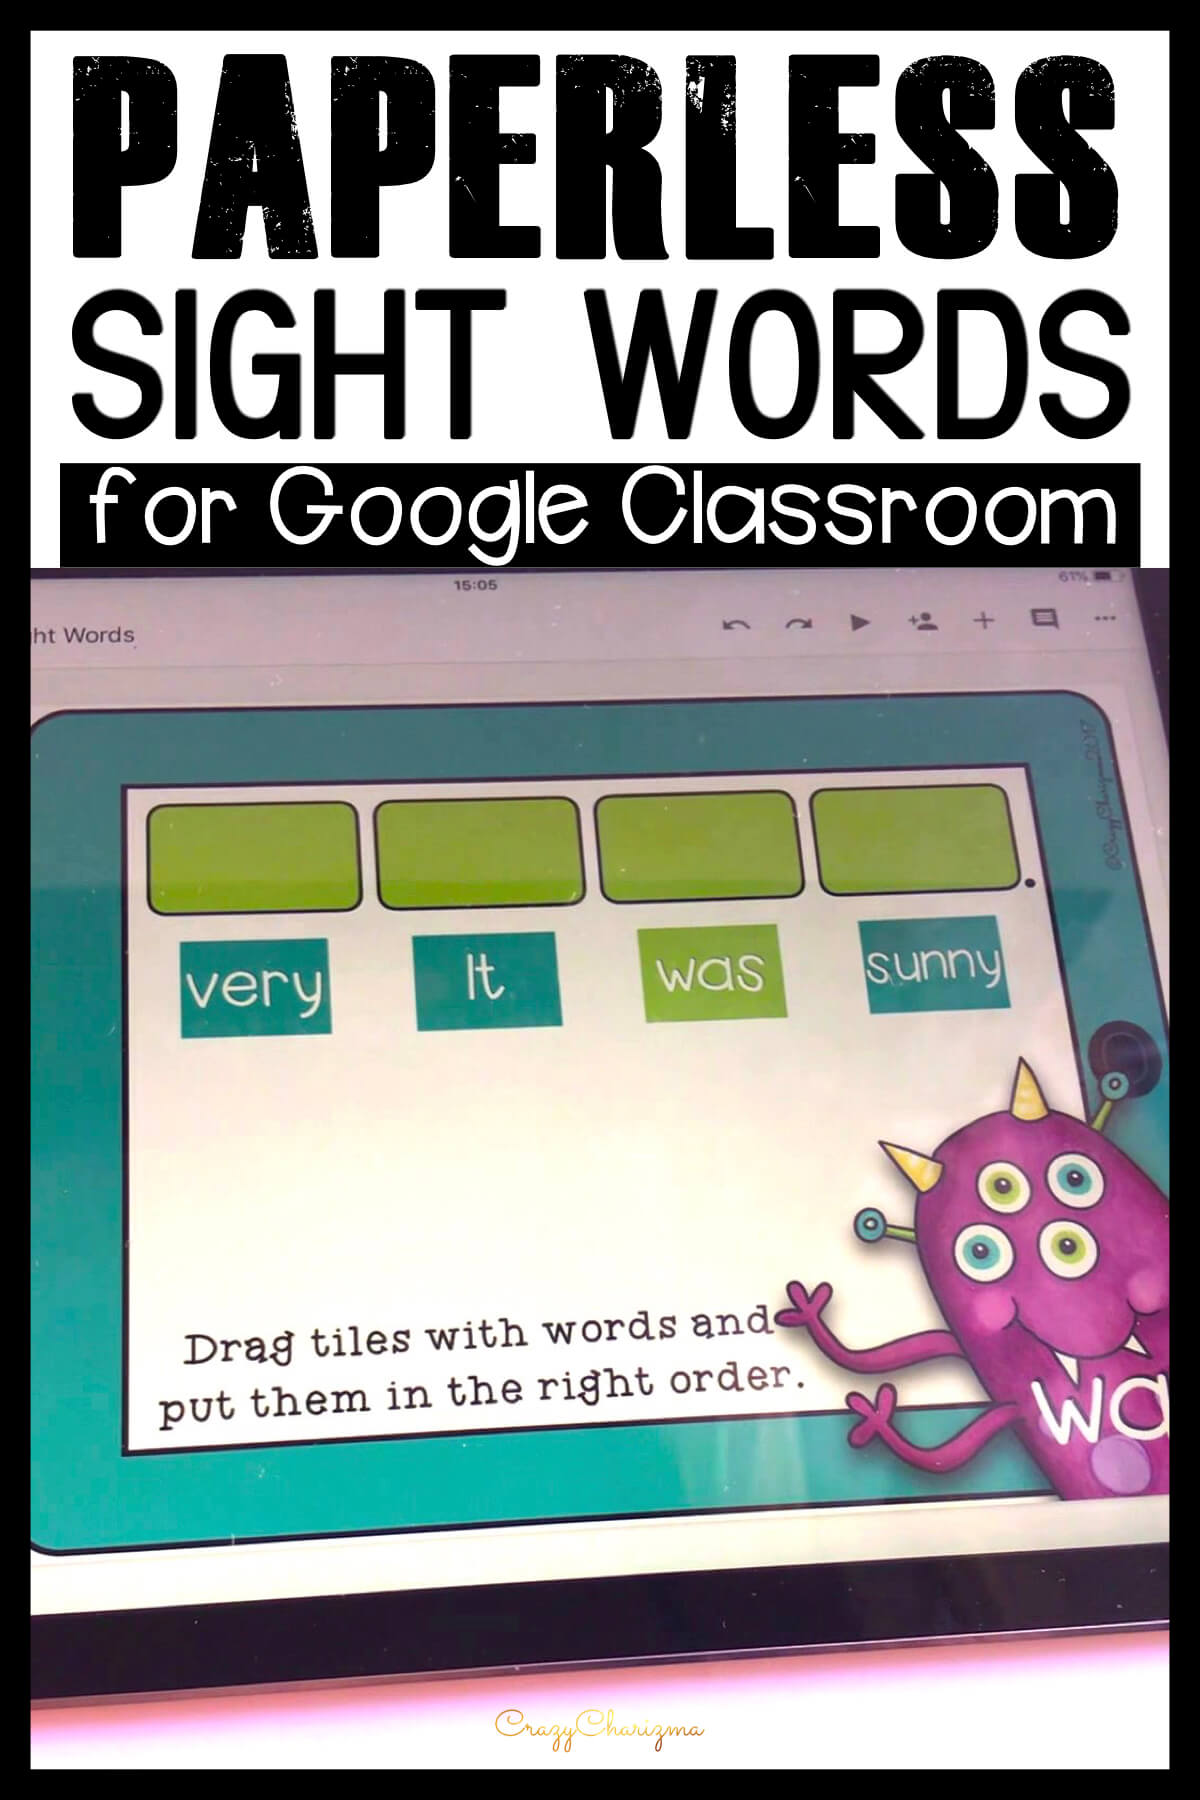 Want to try games for Google Classroom? Need a quick solution to practice sight words and CVC words? Grab this starter kit with interactive slides perfect for iPads, Chromebooks, laptops and tablets!